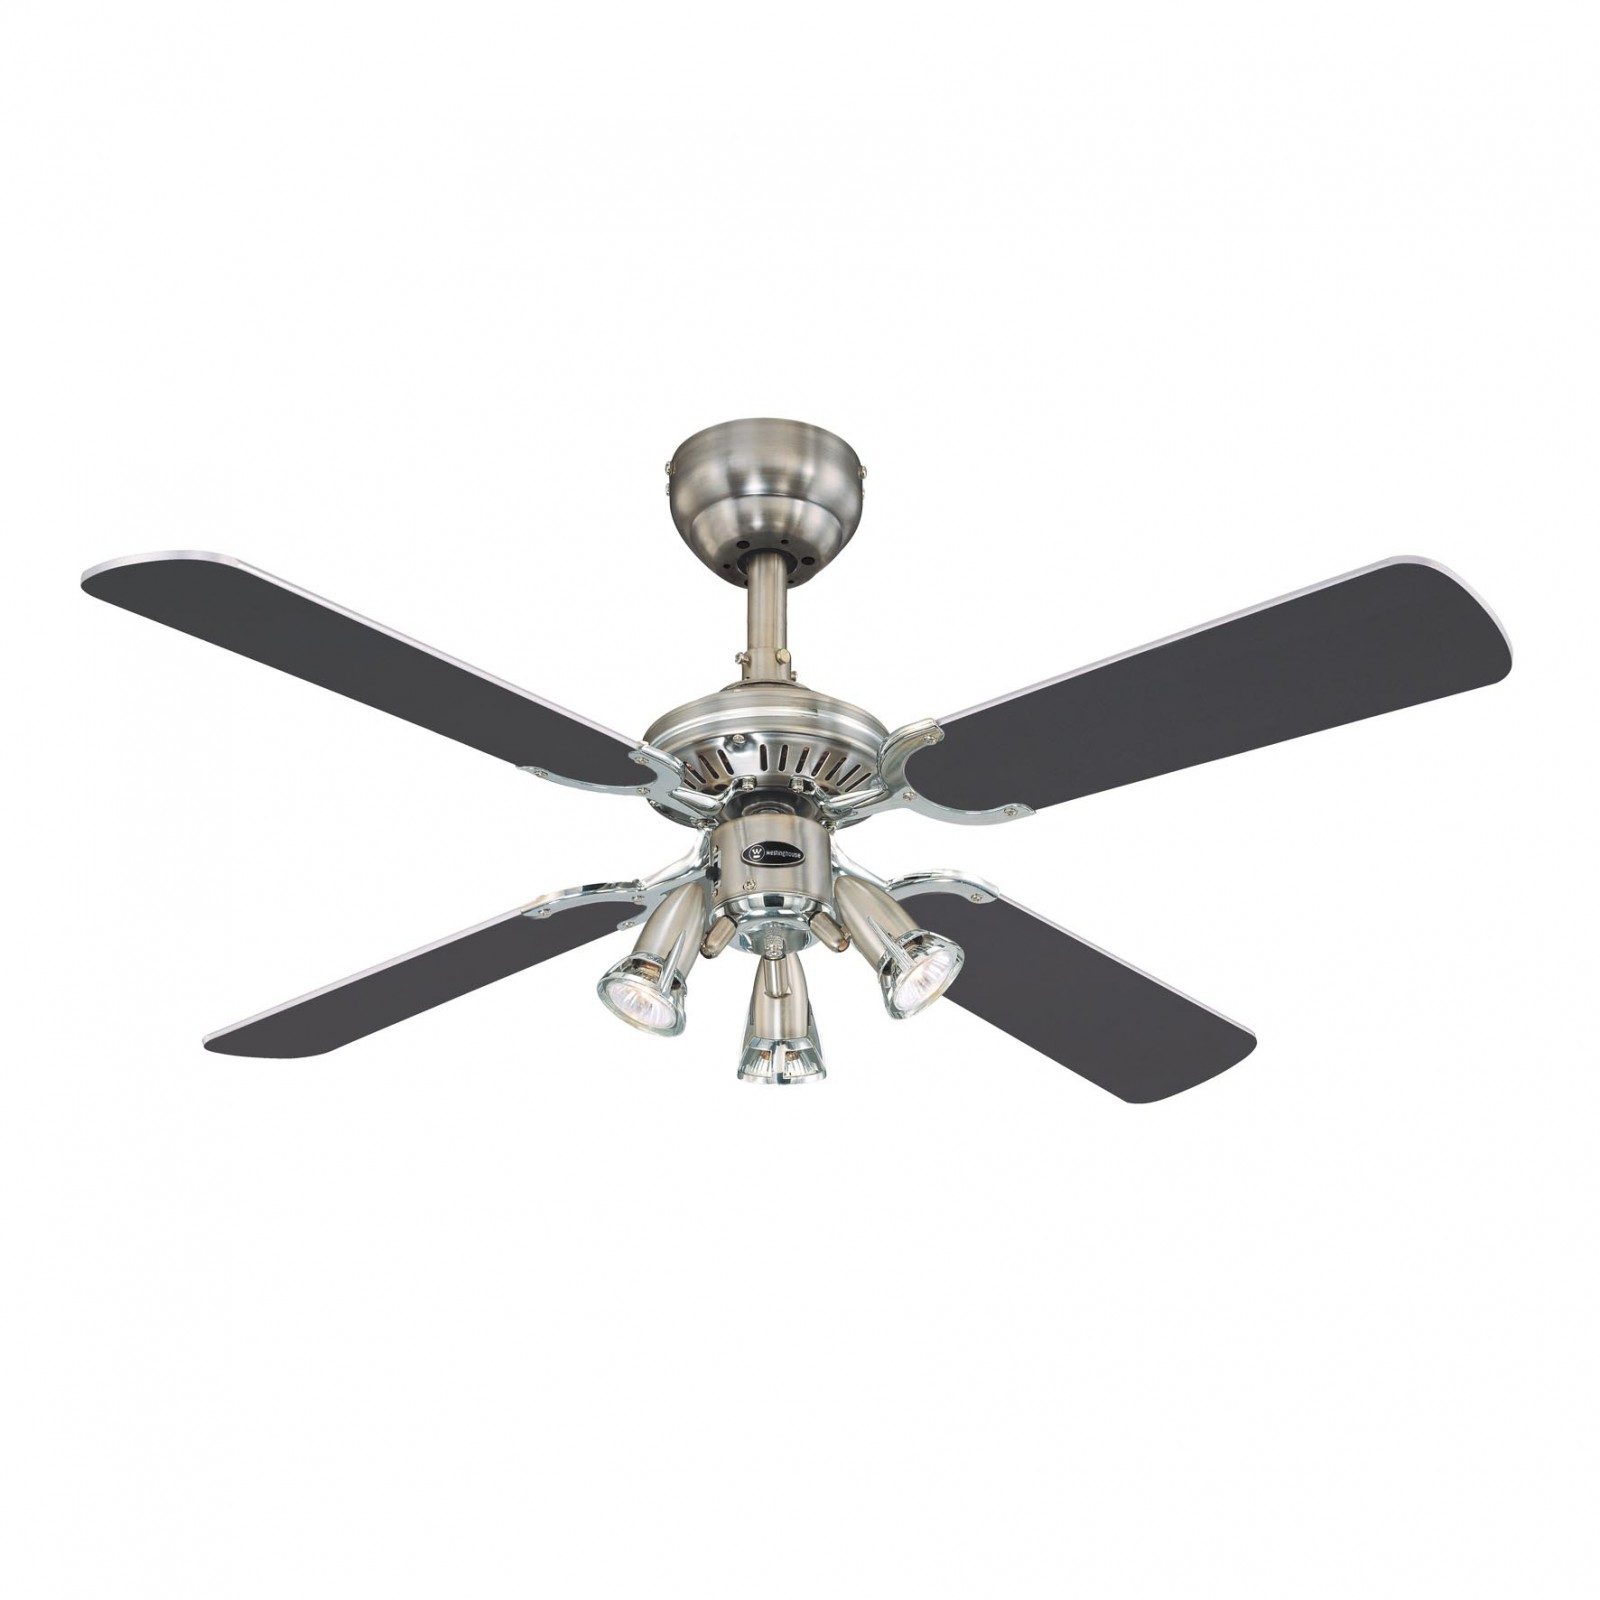 "Westinghouse ceiling fan Princess Euro 105 cm 42"" with lighting"